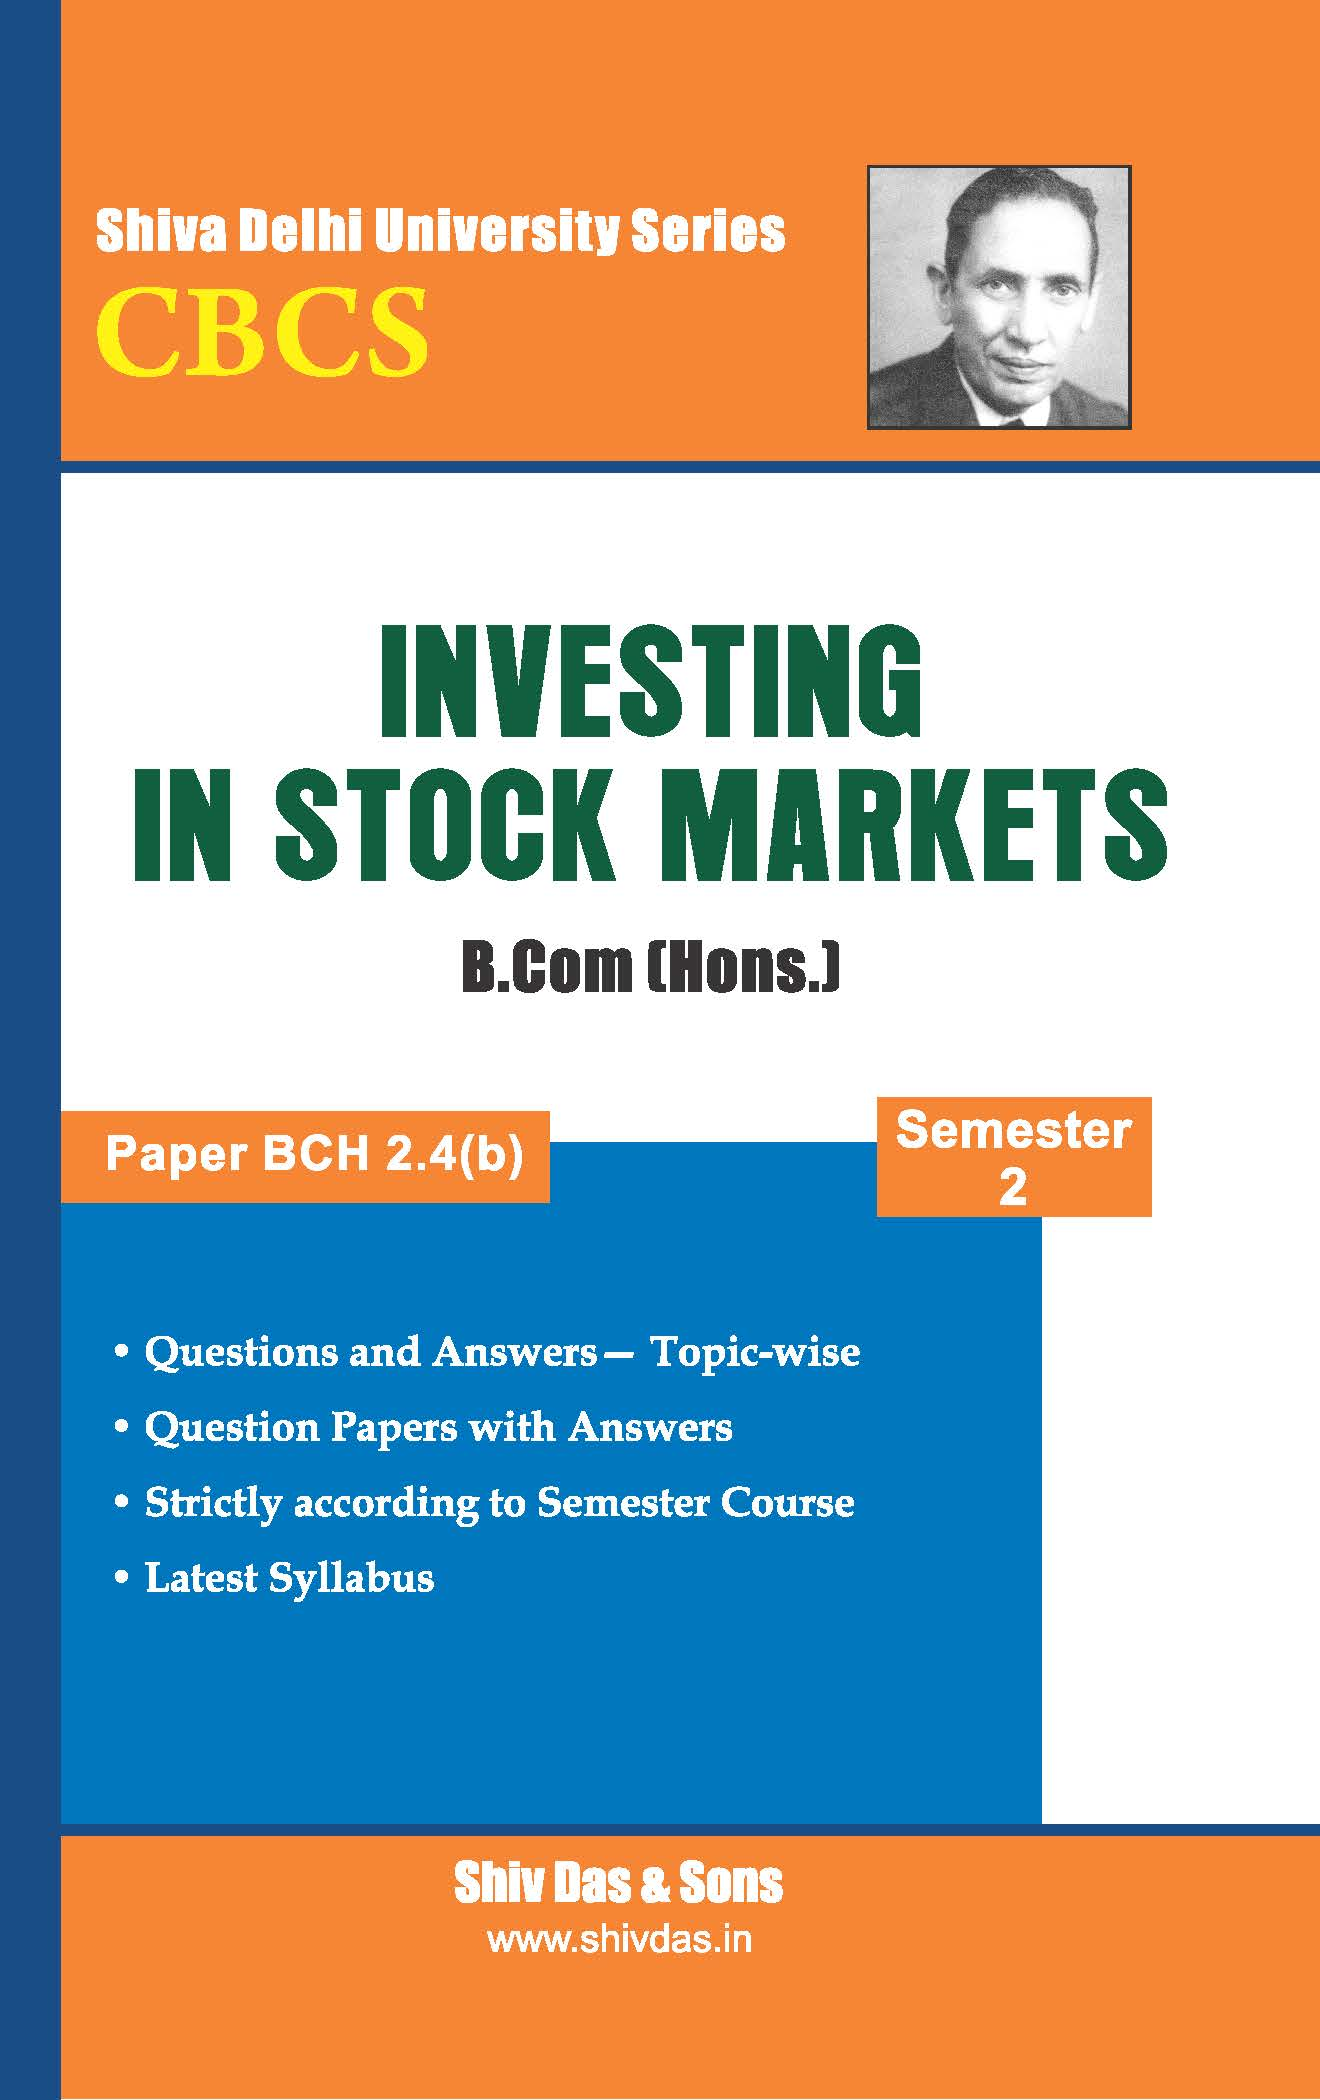 Investing In Stock Markets for B.Com Hons Semester-2